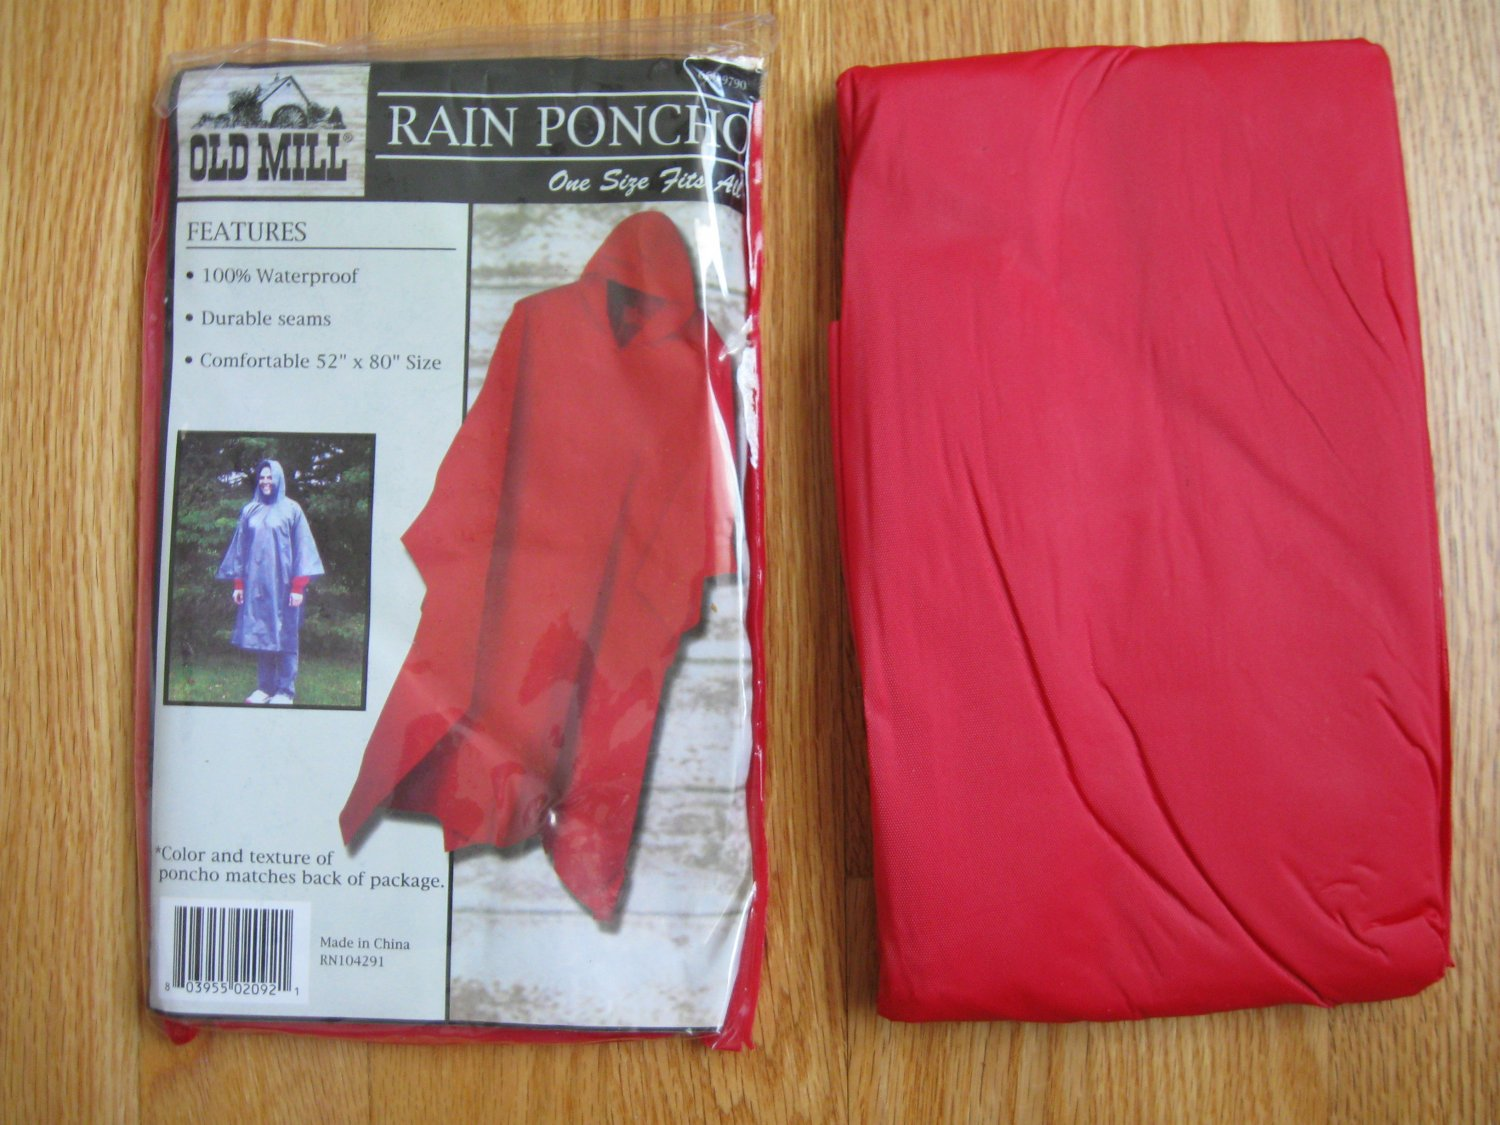 OLD MILL RAIN PONCHO red ONE SIZE FITS ALL NEW IN PACKAGE with hood